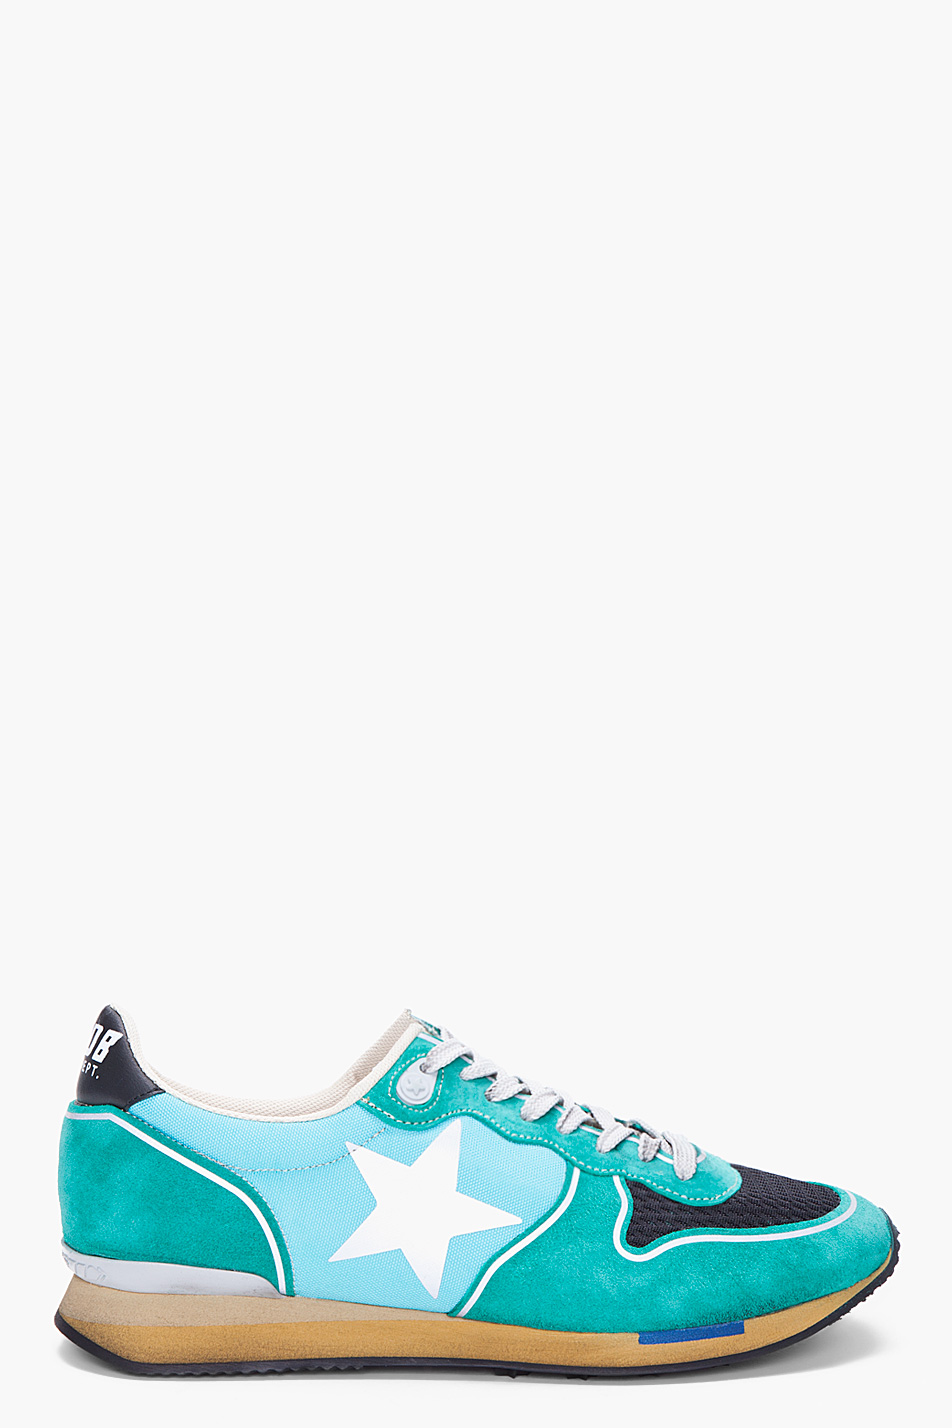 Lyst Golden Goose Deluxe Brand Teal Running Shoes In